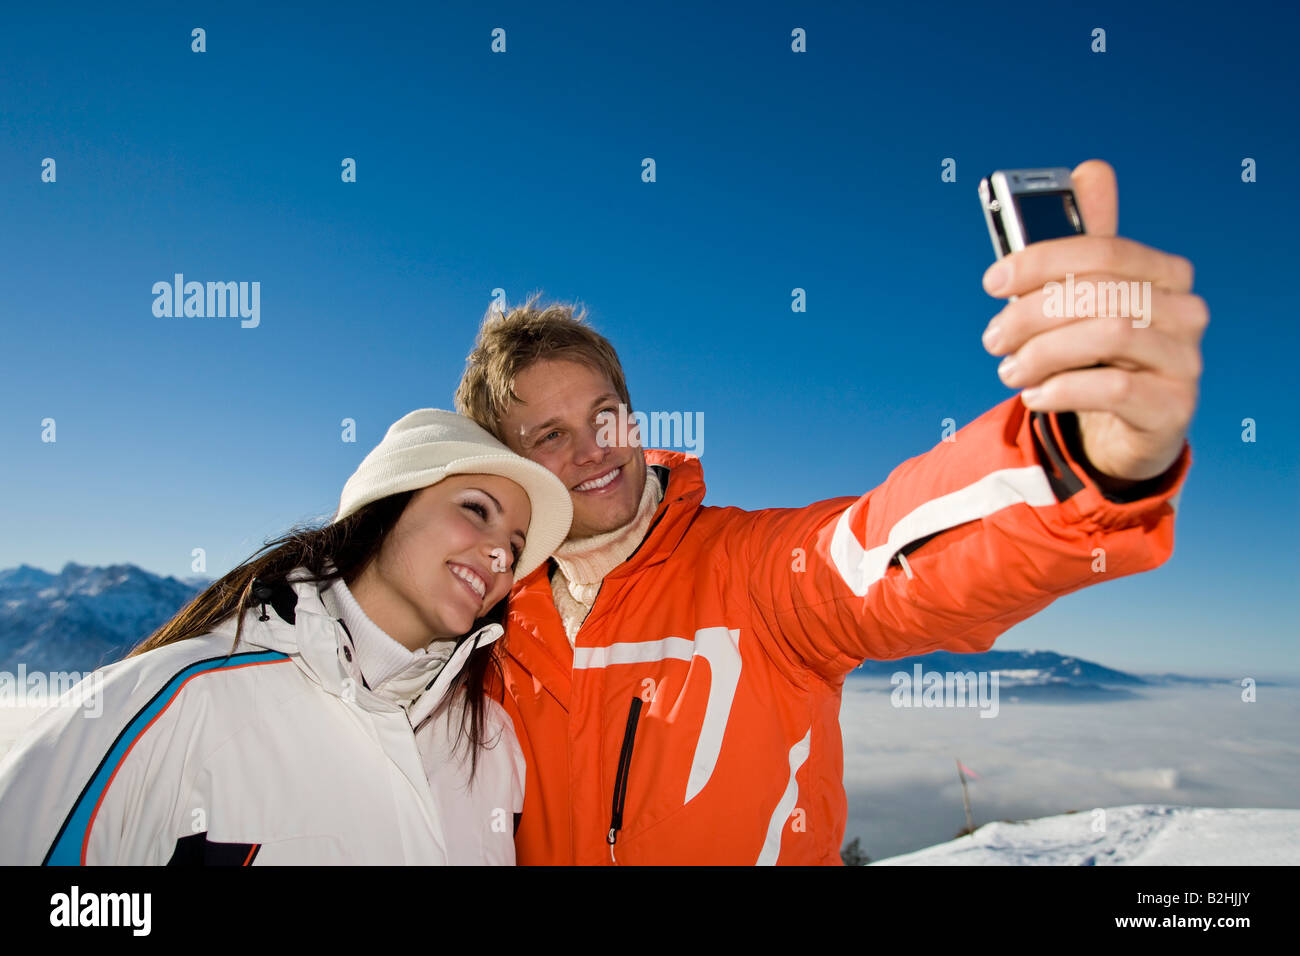 young couple in the mountains taking photo of themselves - Stock Image